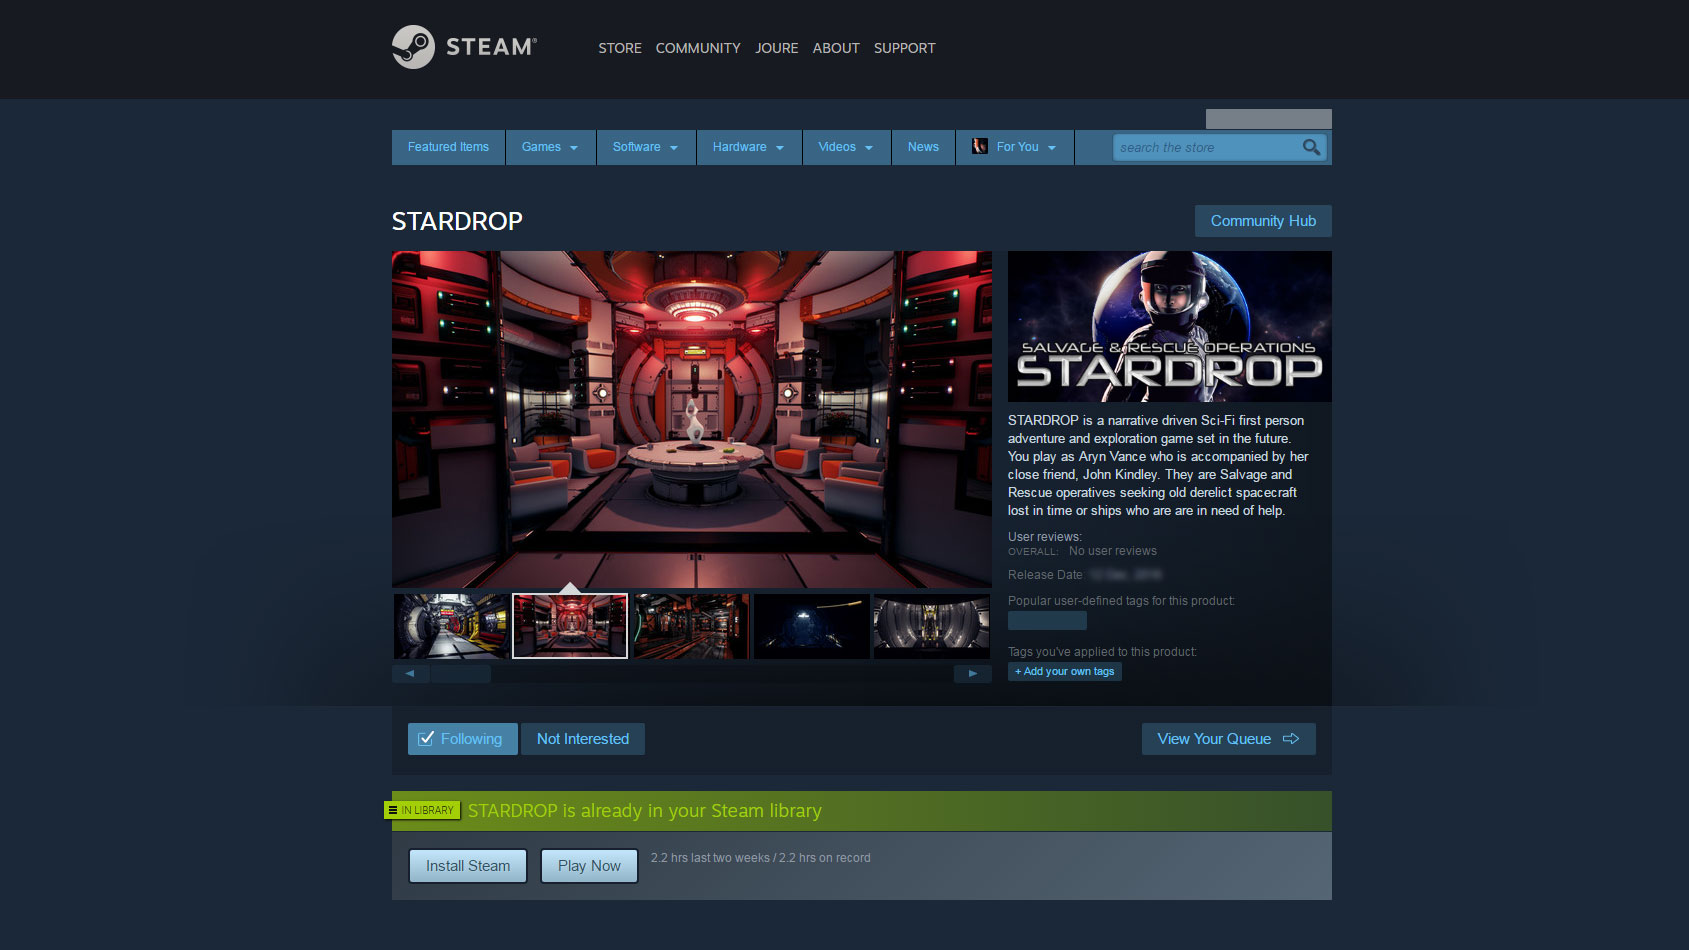 STARDROP On Steam